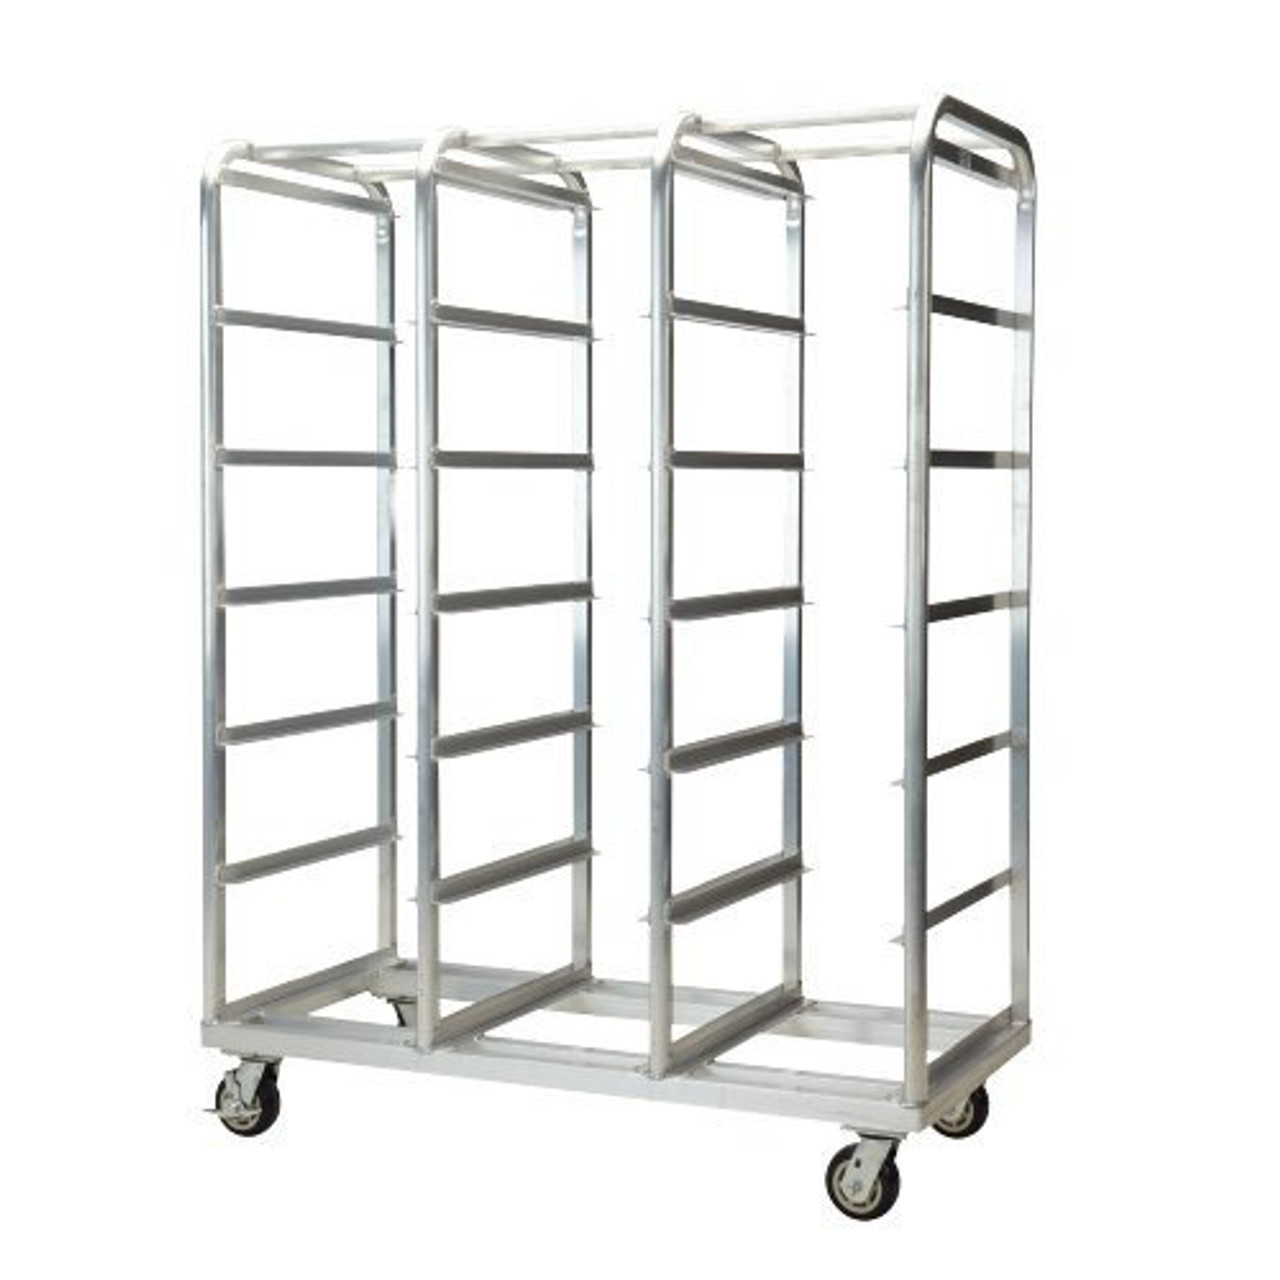 18 Tote Dolly - Welded Aluminum